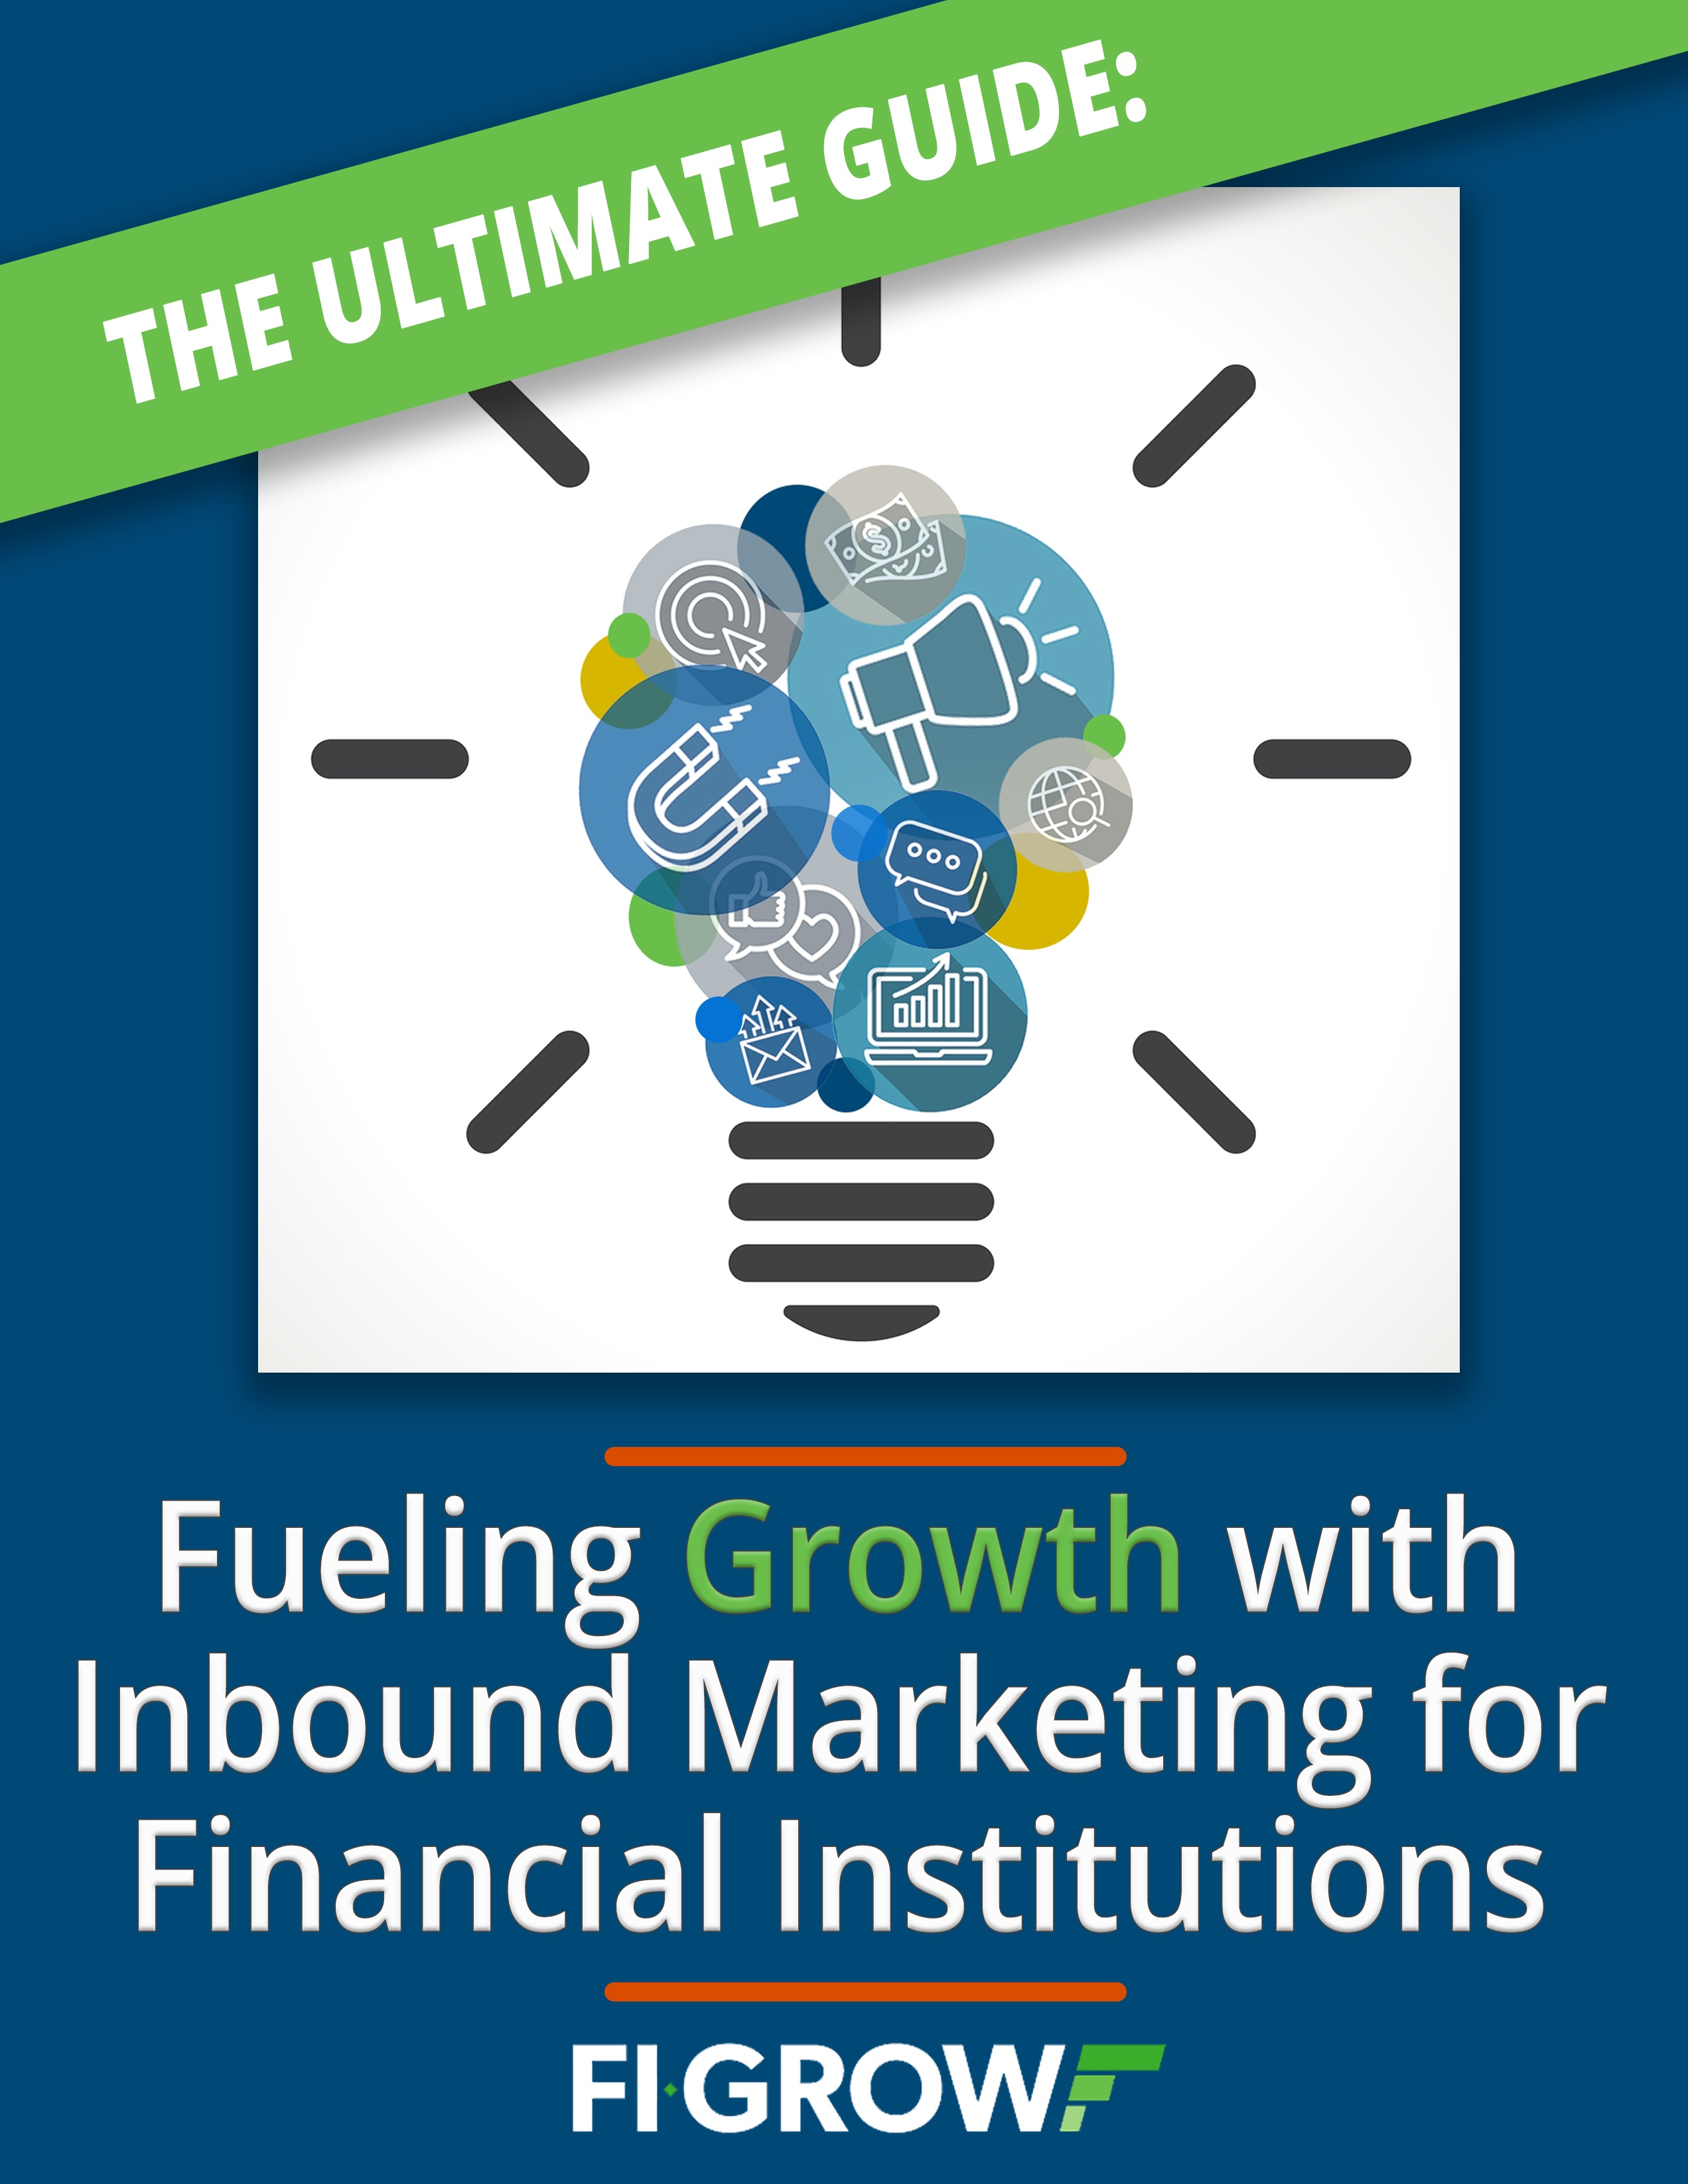 The Ultimate Guide to Successful Inbound Marketing for Financial Institutions